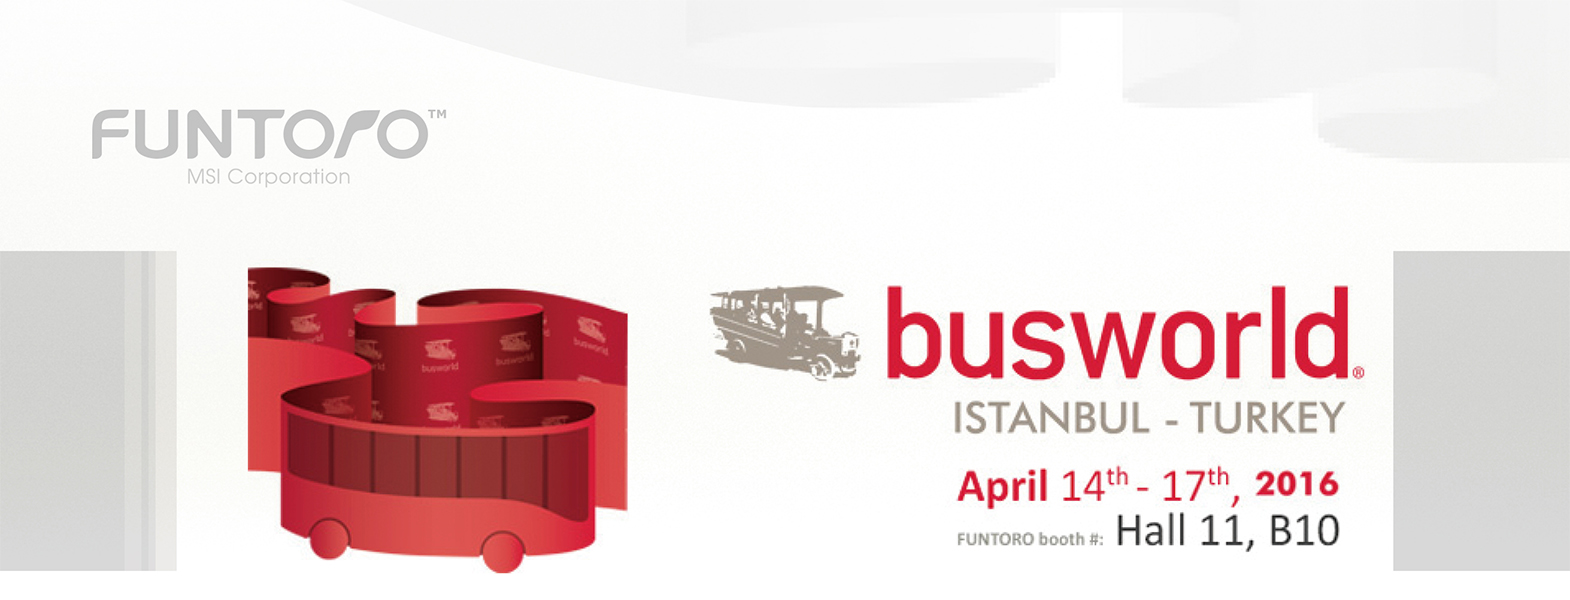 Welcome to visit MSI/FUNTORO (Booth#Hall 11, B10) at Busworld Turkey 2016